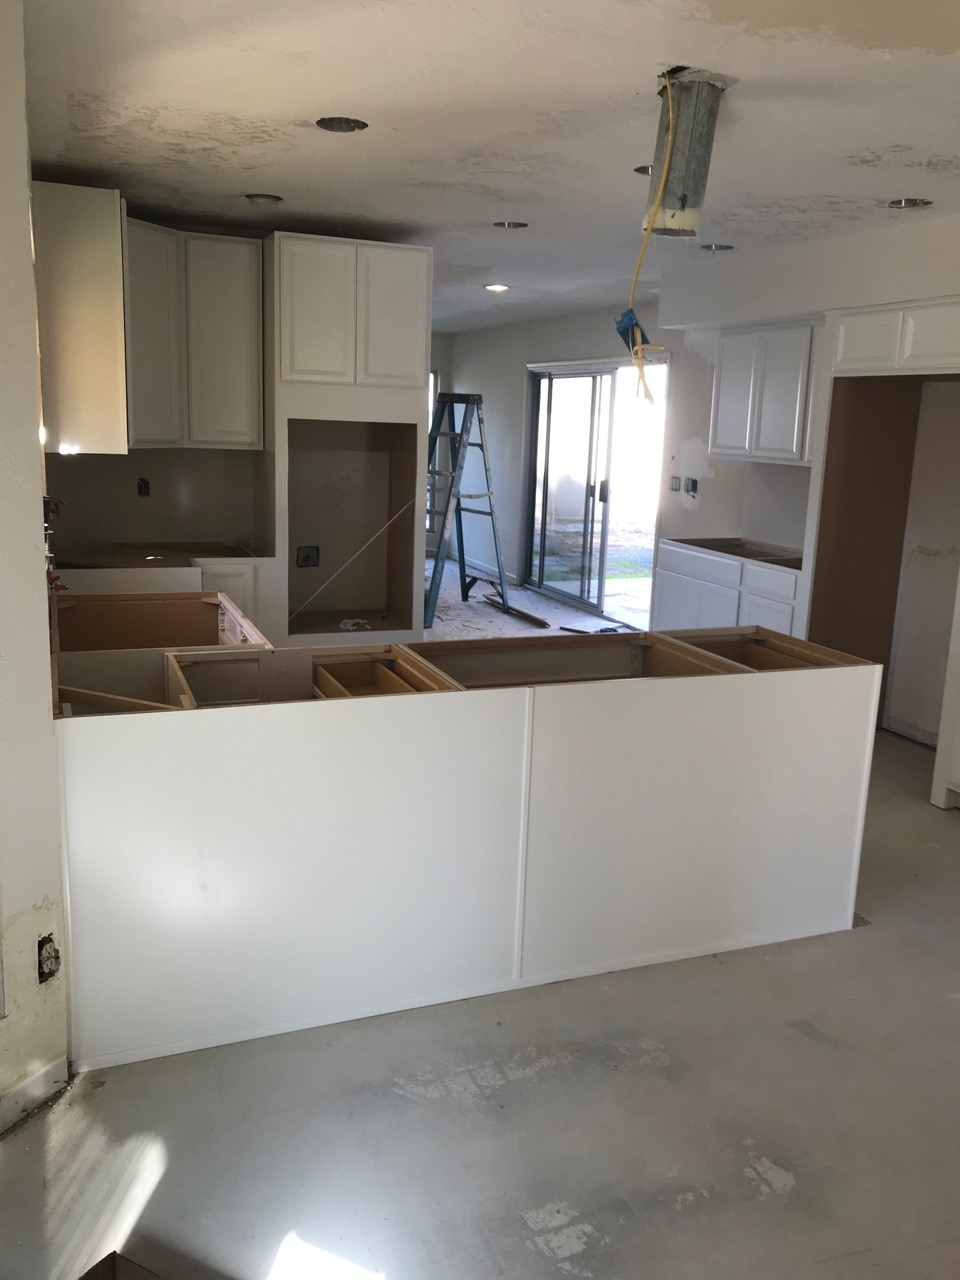 New cabinets are installed